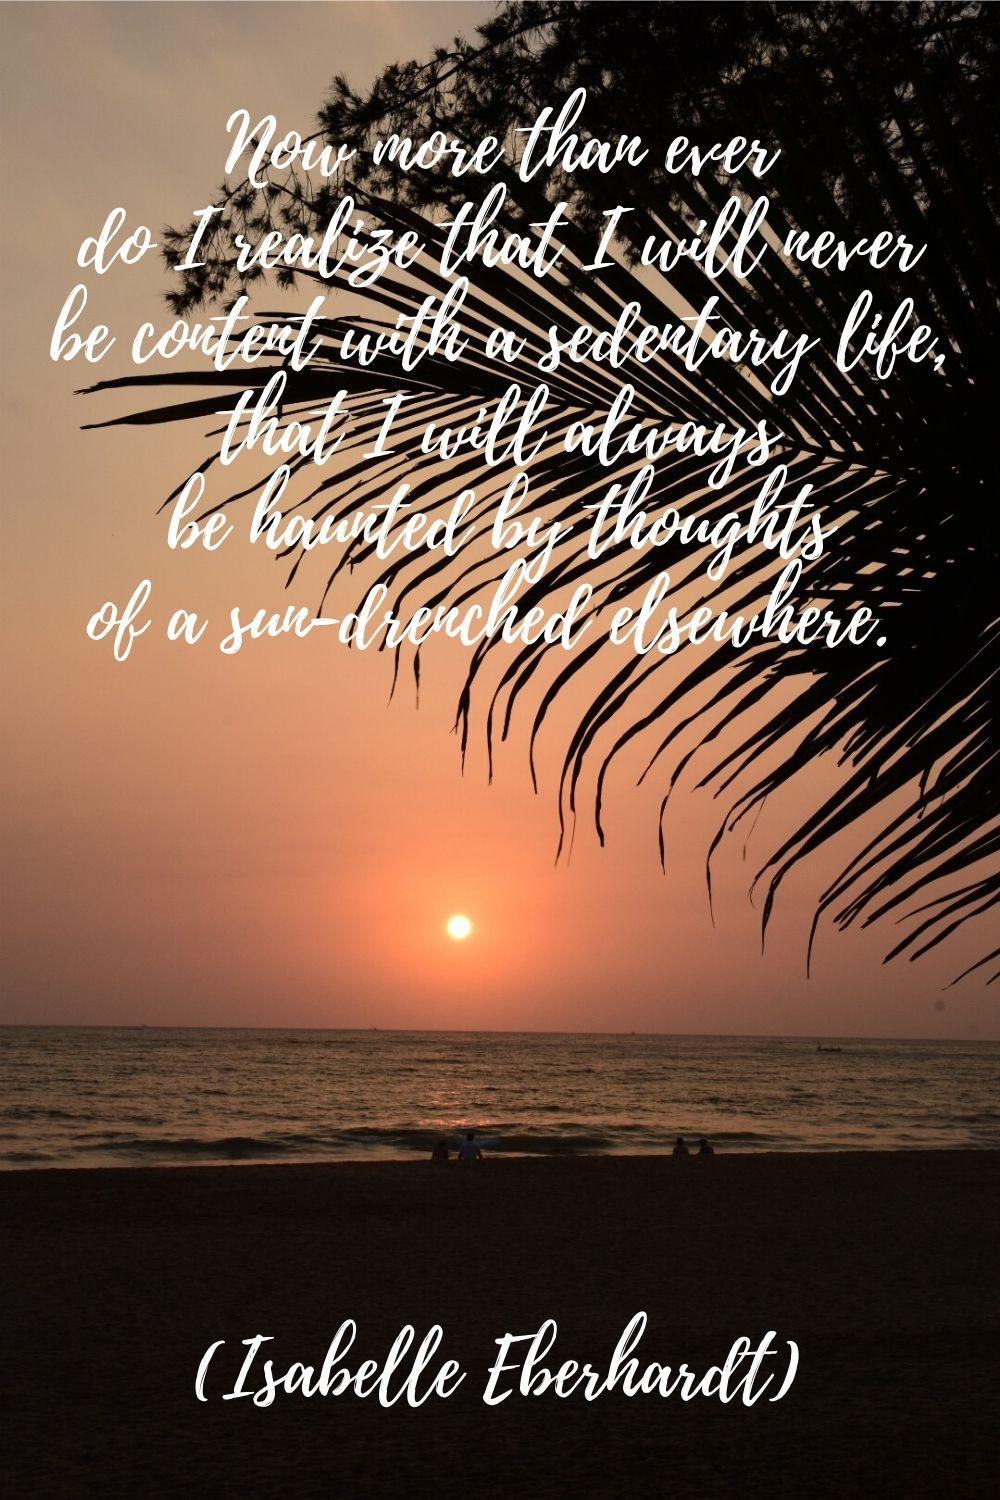 Travel quotes by women writers - Isabelle Eberhardt